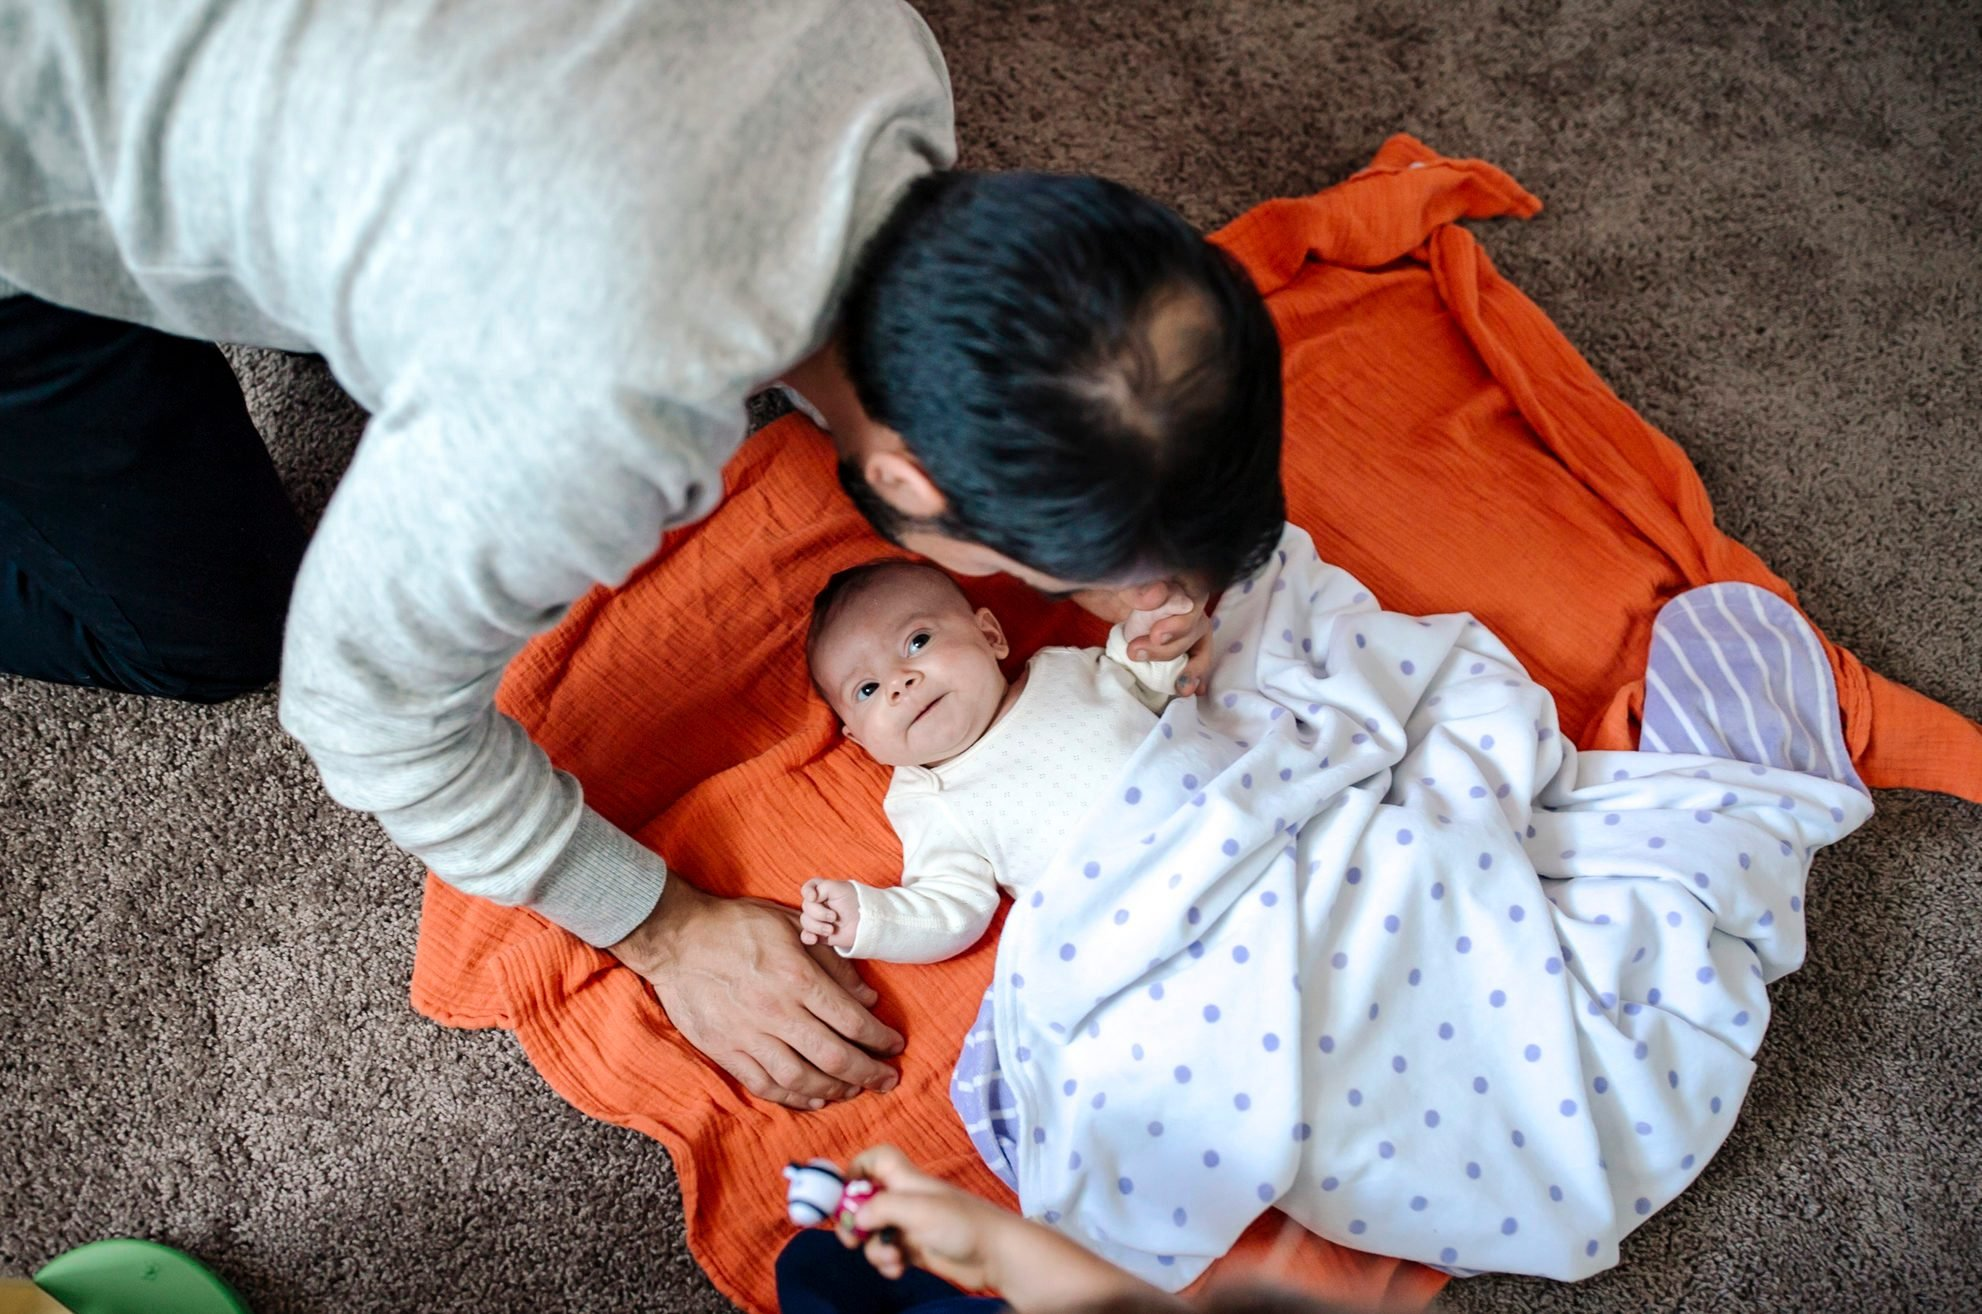 Father leaning over baby on orange blanket on floor